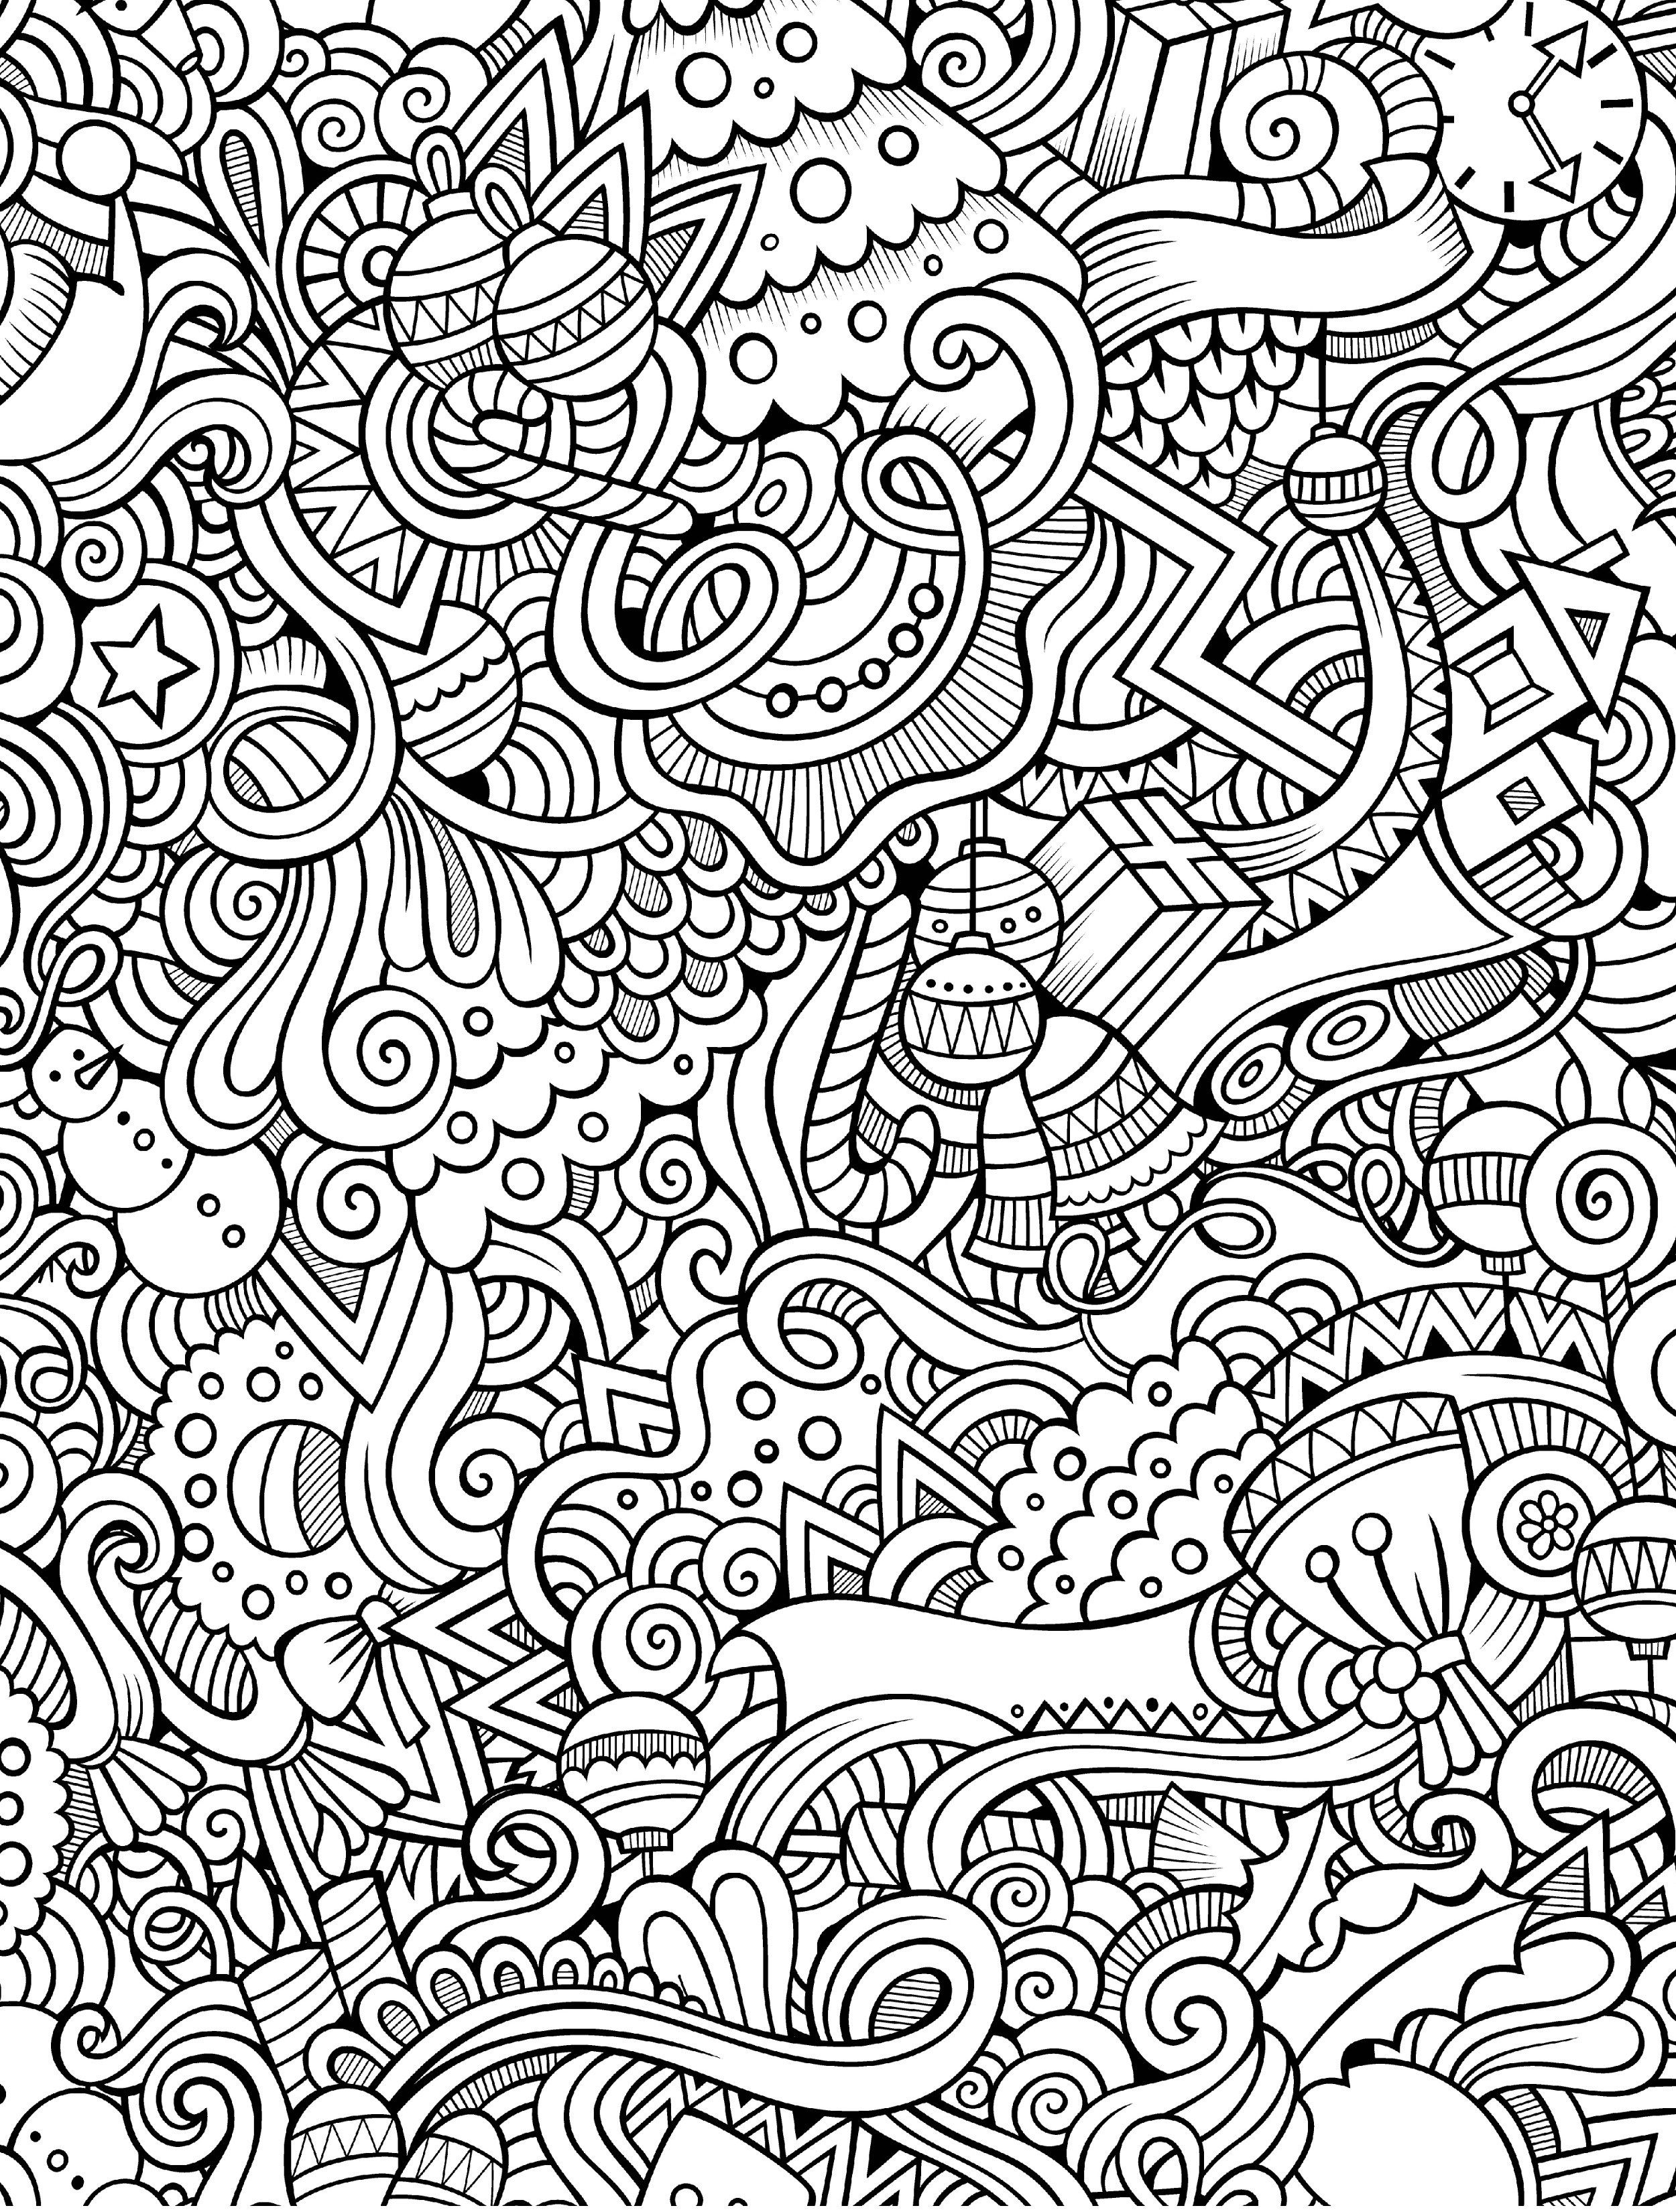 10 Free Printable Holiday Adult Coloring Pages Heart Coloring